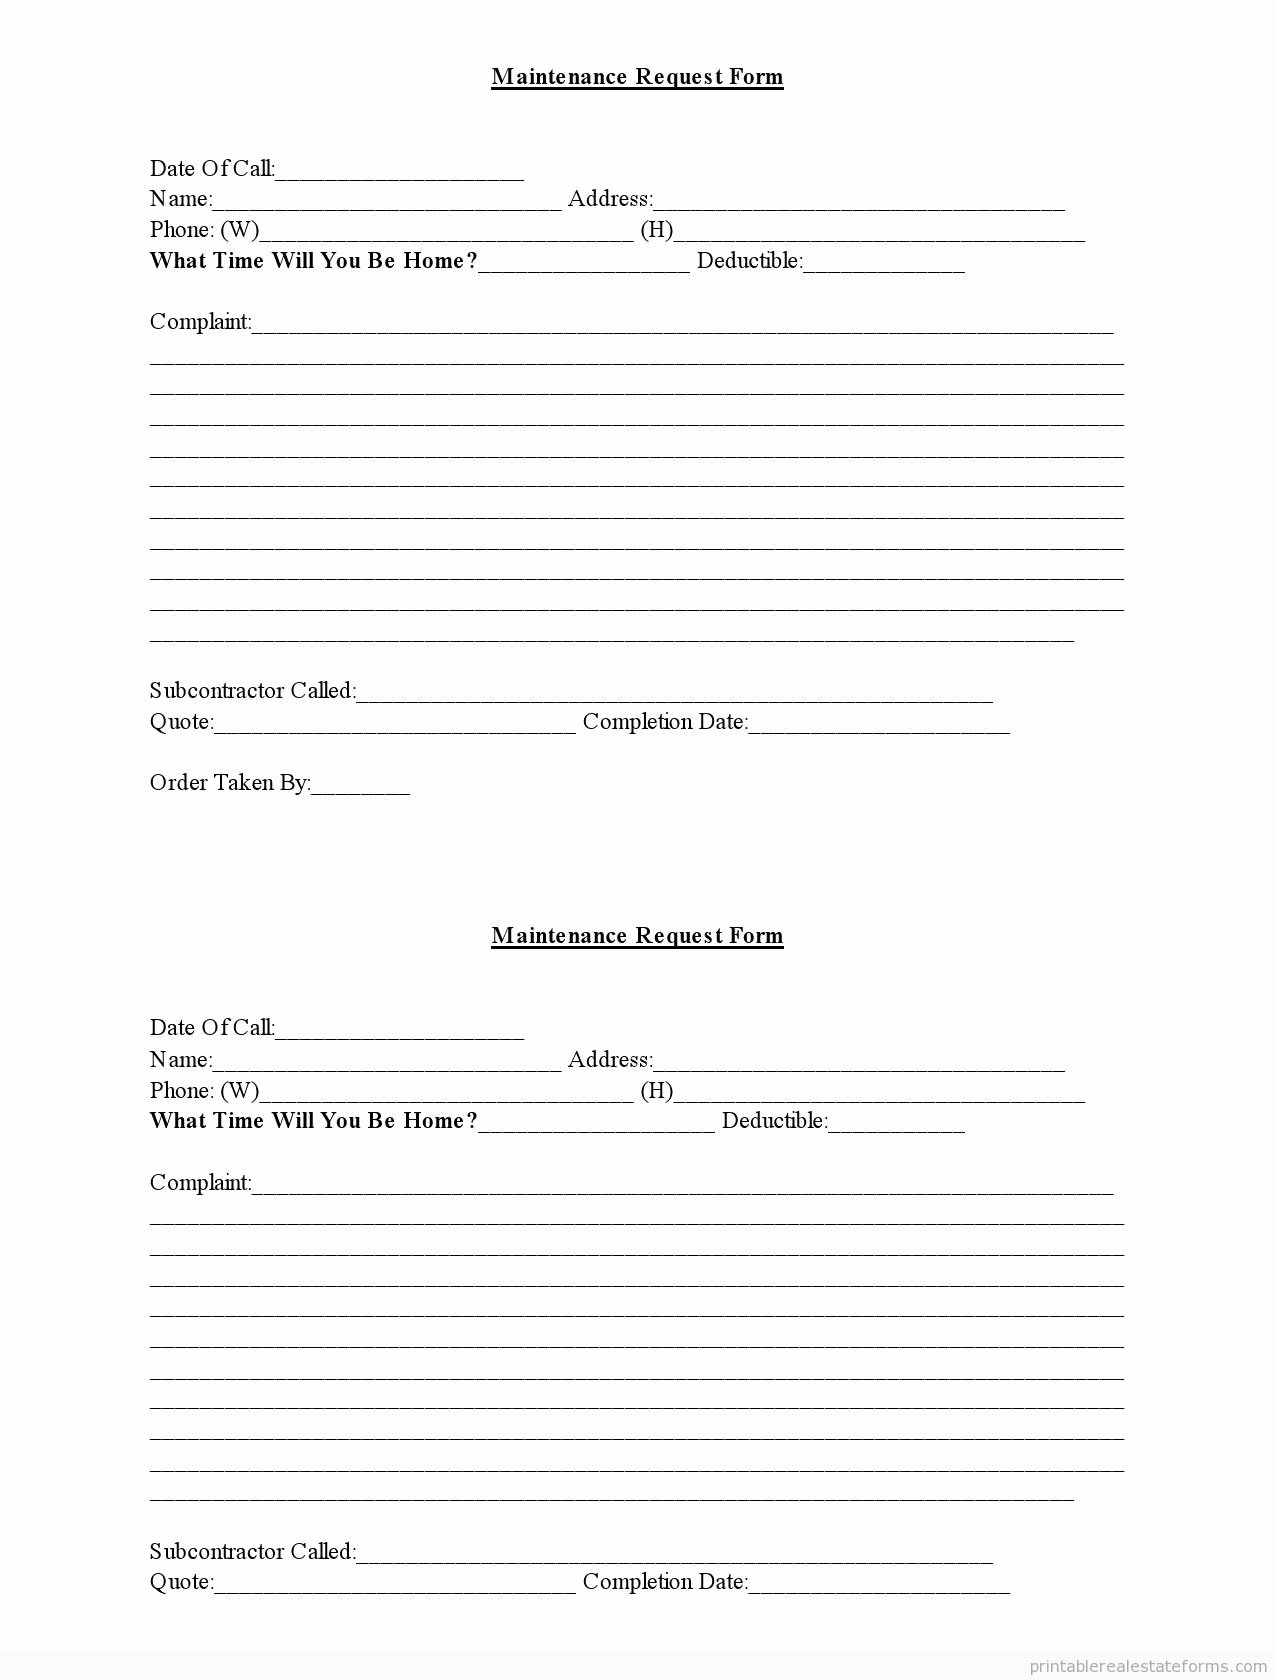 Maintenance Service Request form Template Awesome Free Maintenance forms Maintenance Request form Word